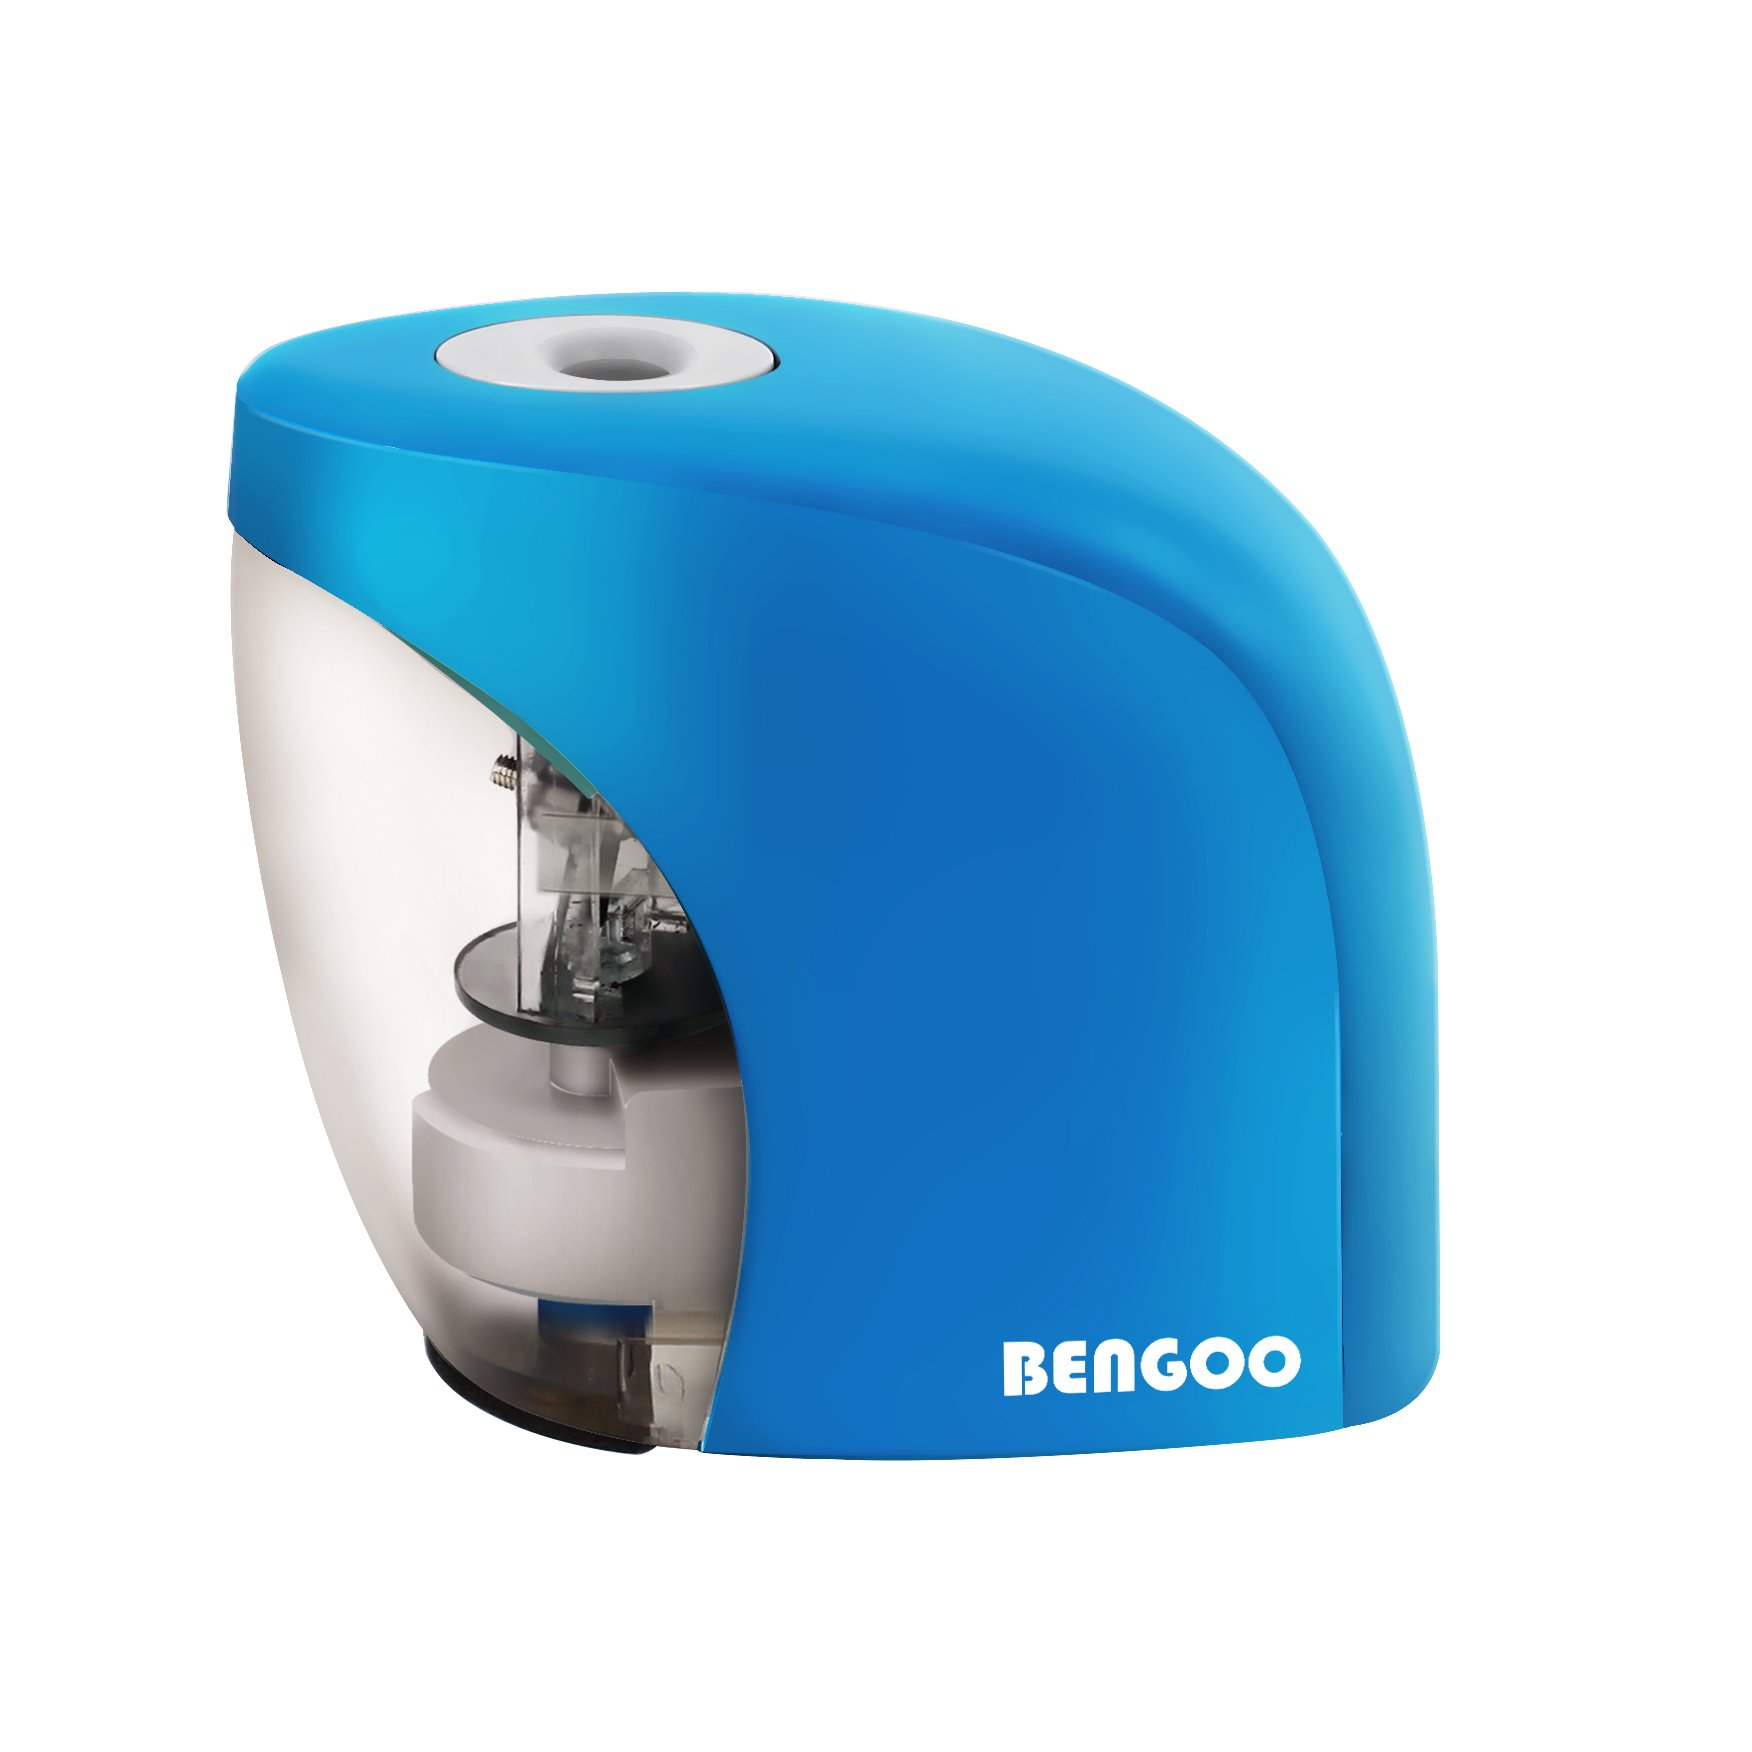 Pencil Sharpener with Auto Feature, BENGOO Electric Durable and Portable Pencil Sharpener for 8mm diameter Pencils, for School Classroom, Home Study, Office Use-Blue (Batteries not included)